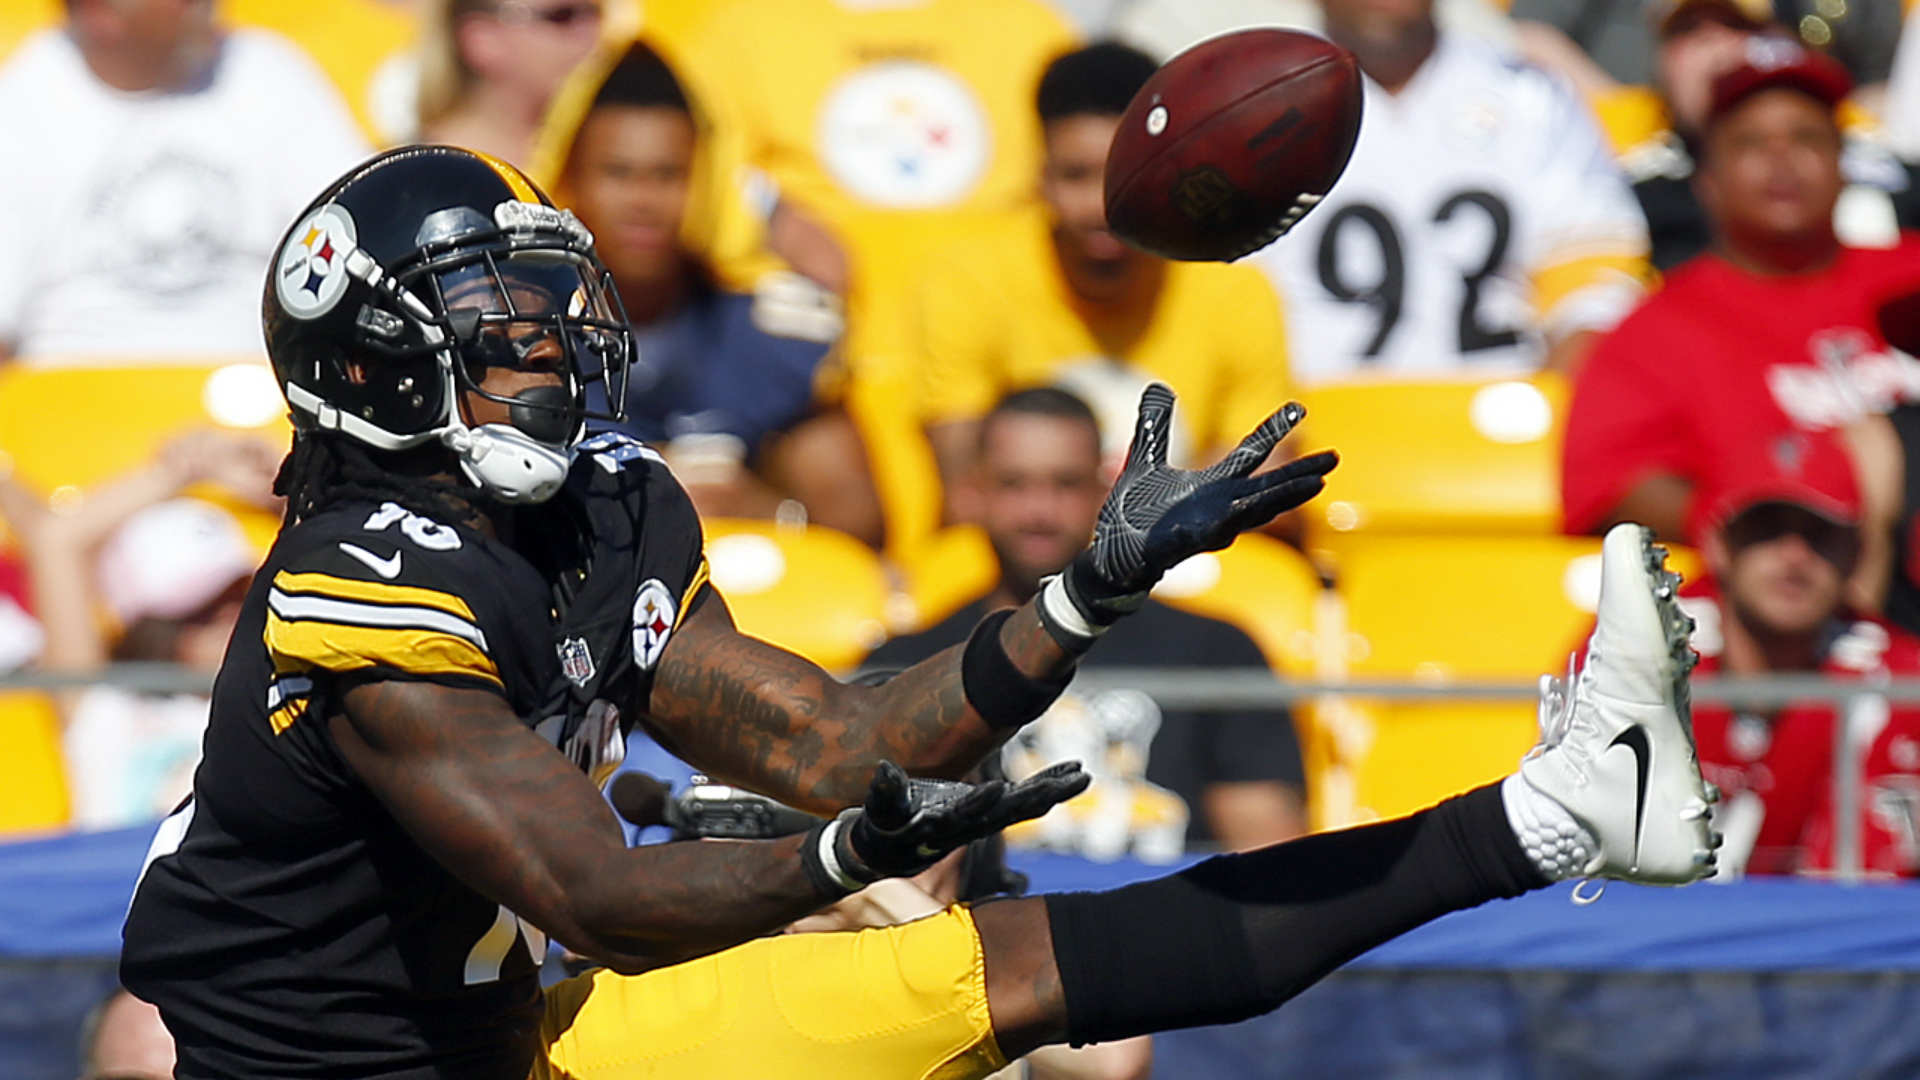 Steelers receiver Martavis Bryant cleared for regular season by